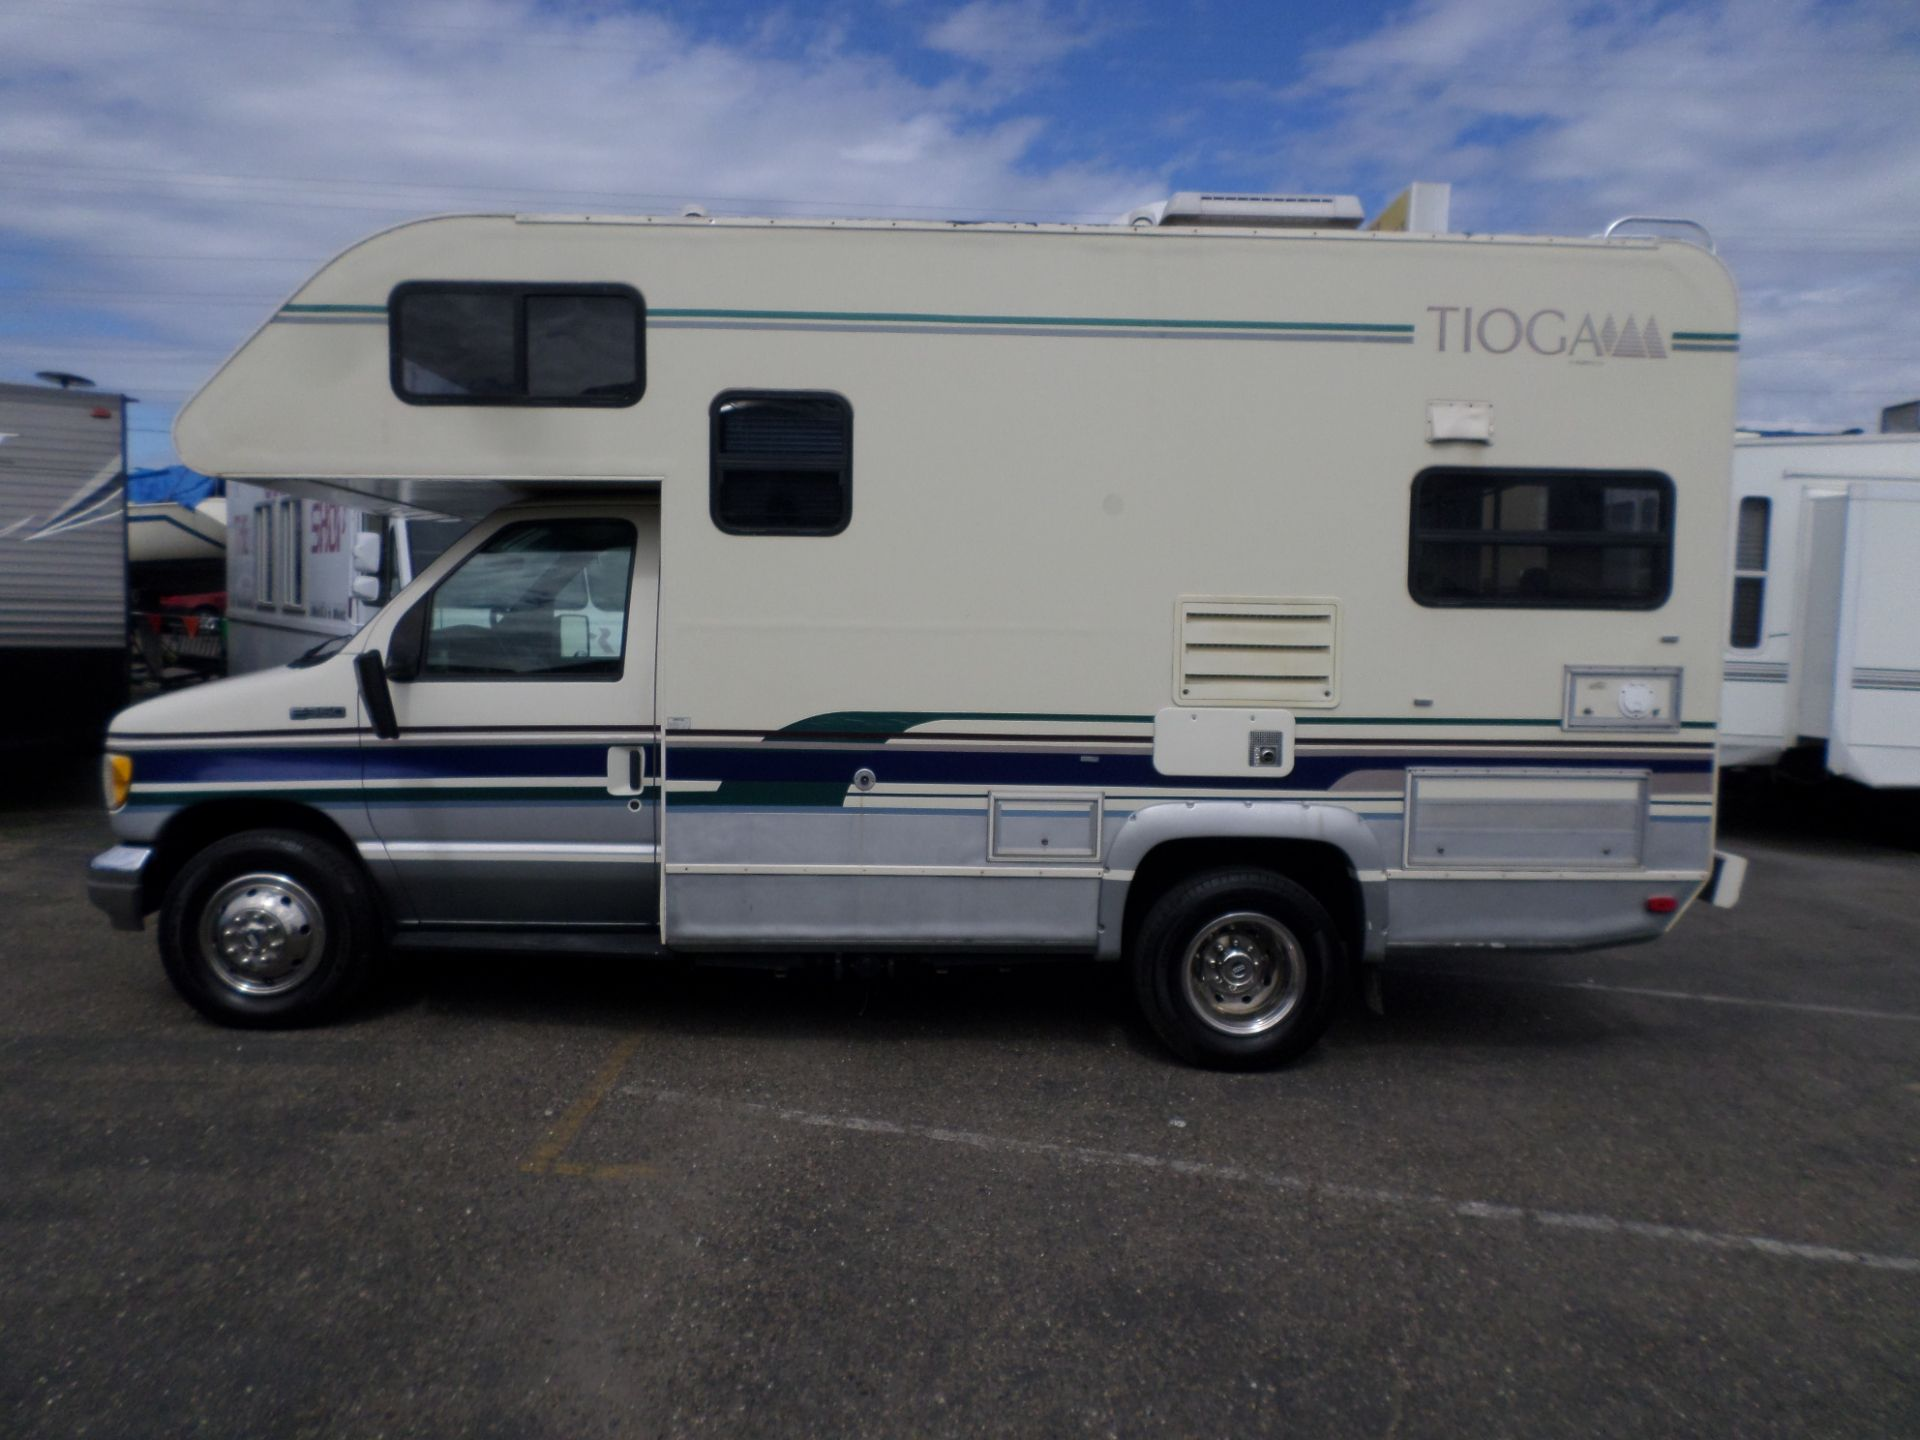 Rv For Sale 1995 Fleetwood Tioga Mini Motorhome 19 In Lodi Stockton Ca Rv Motorhomes For Sale Mini Motorhome Used Rv For Sale